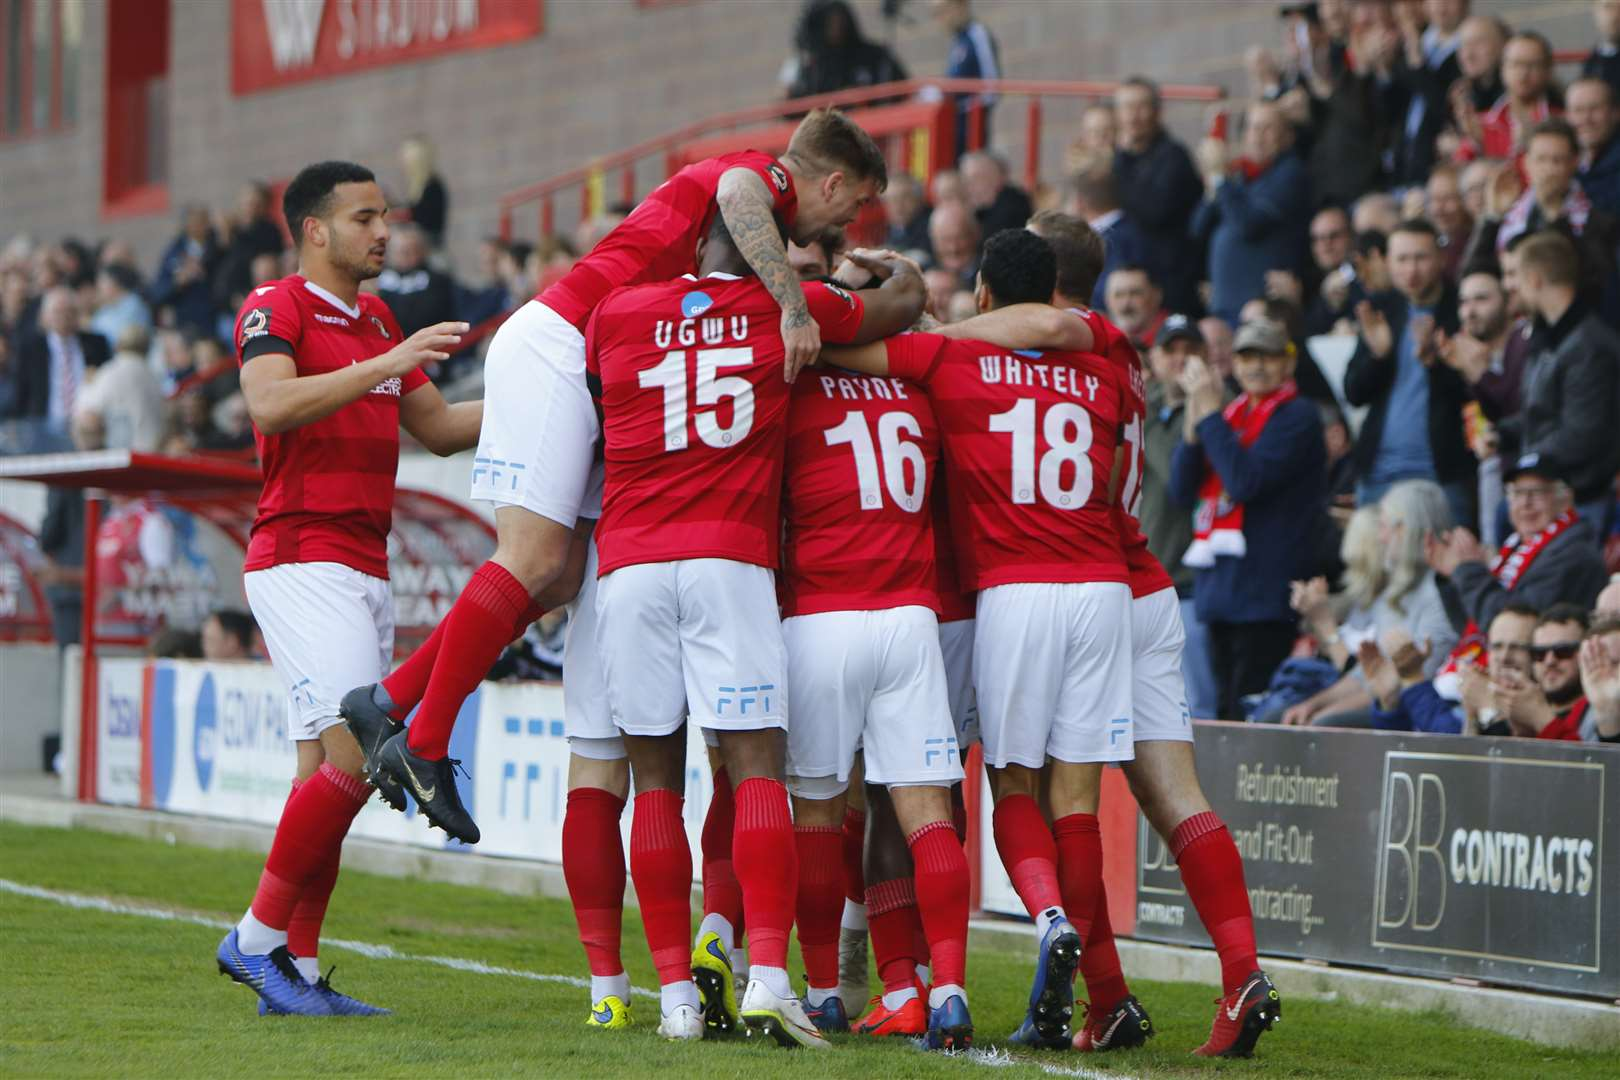 Ebbsfleet celebrate their first goal against Wrexham Picture: Andy Jones